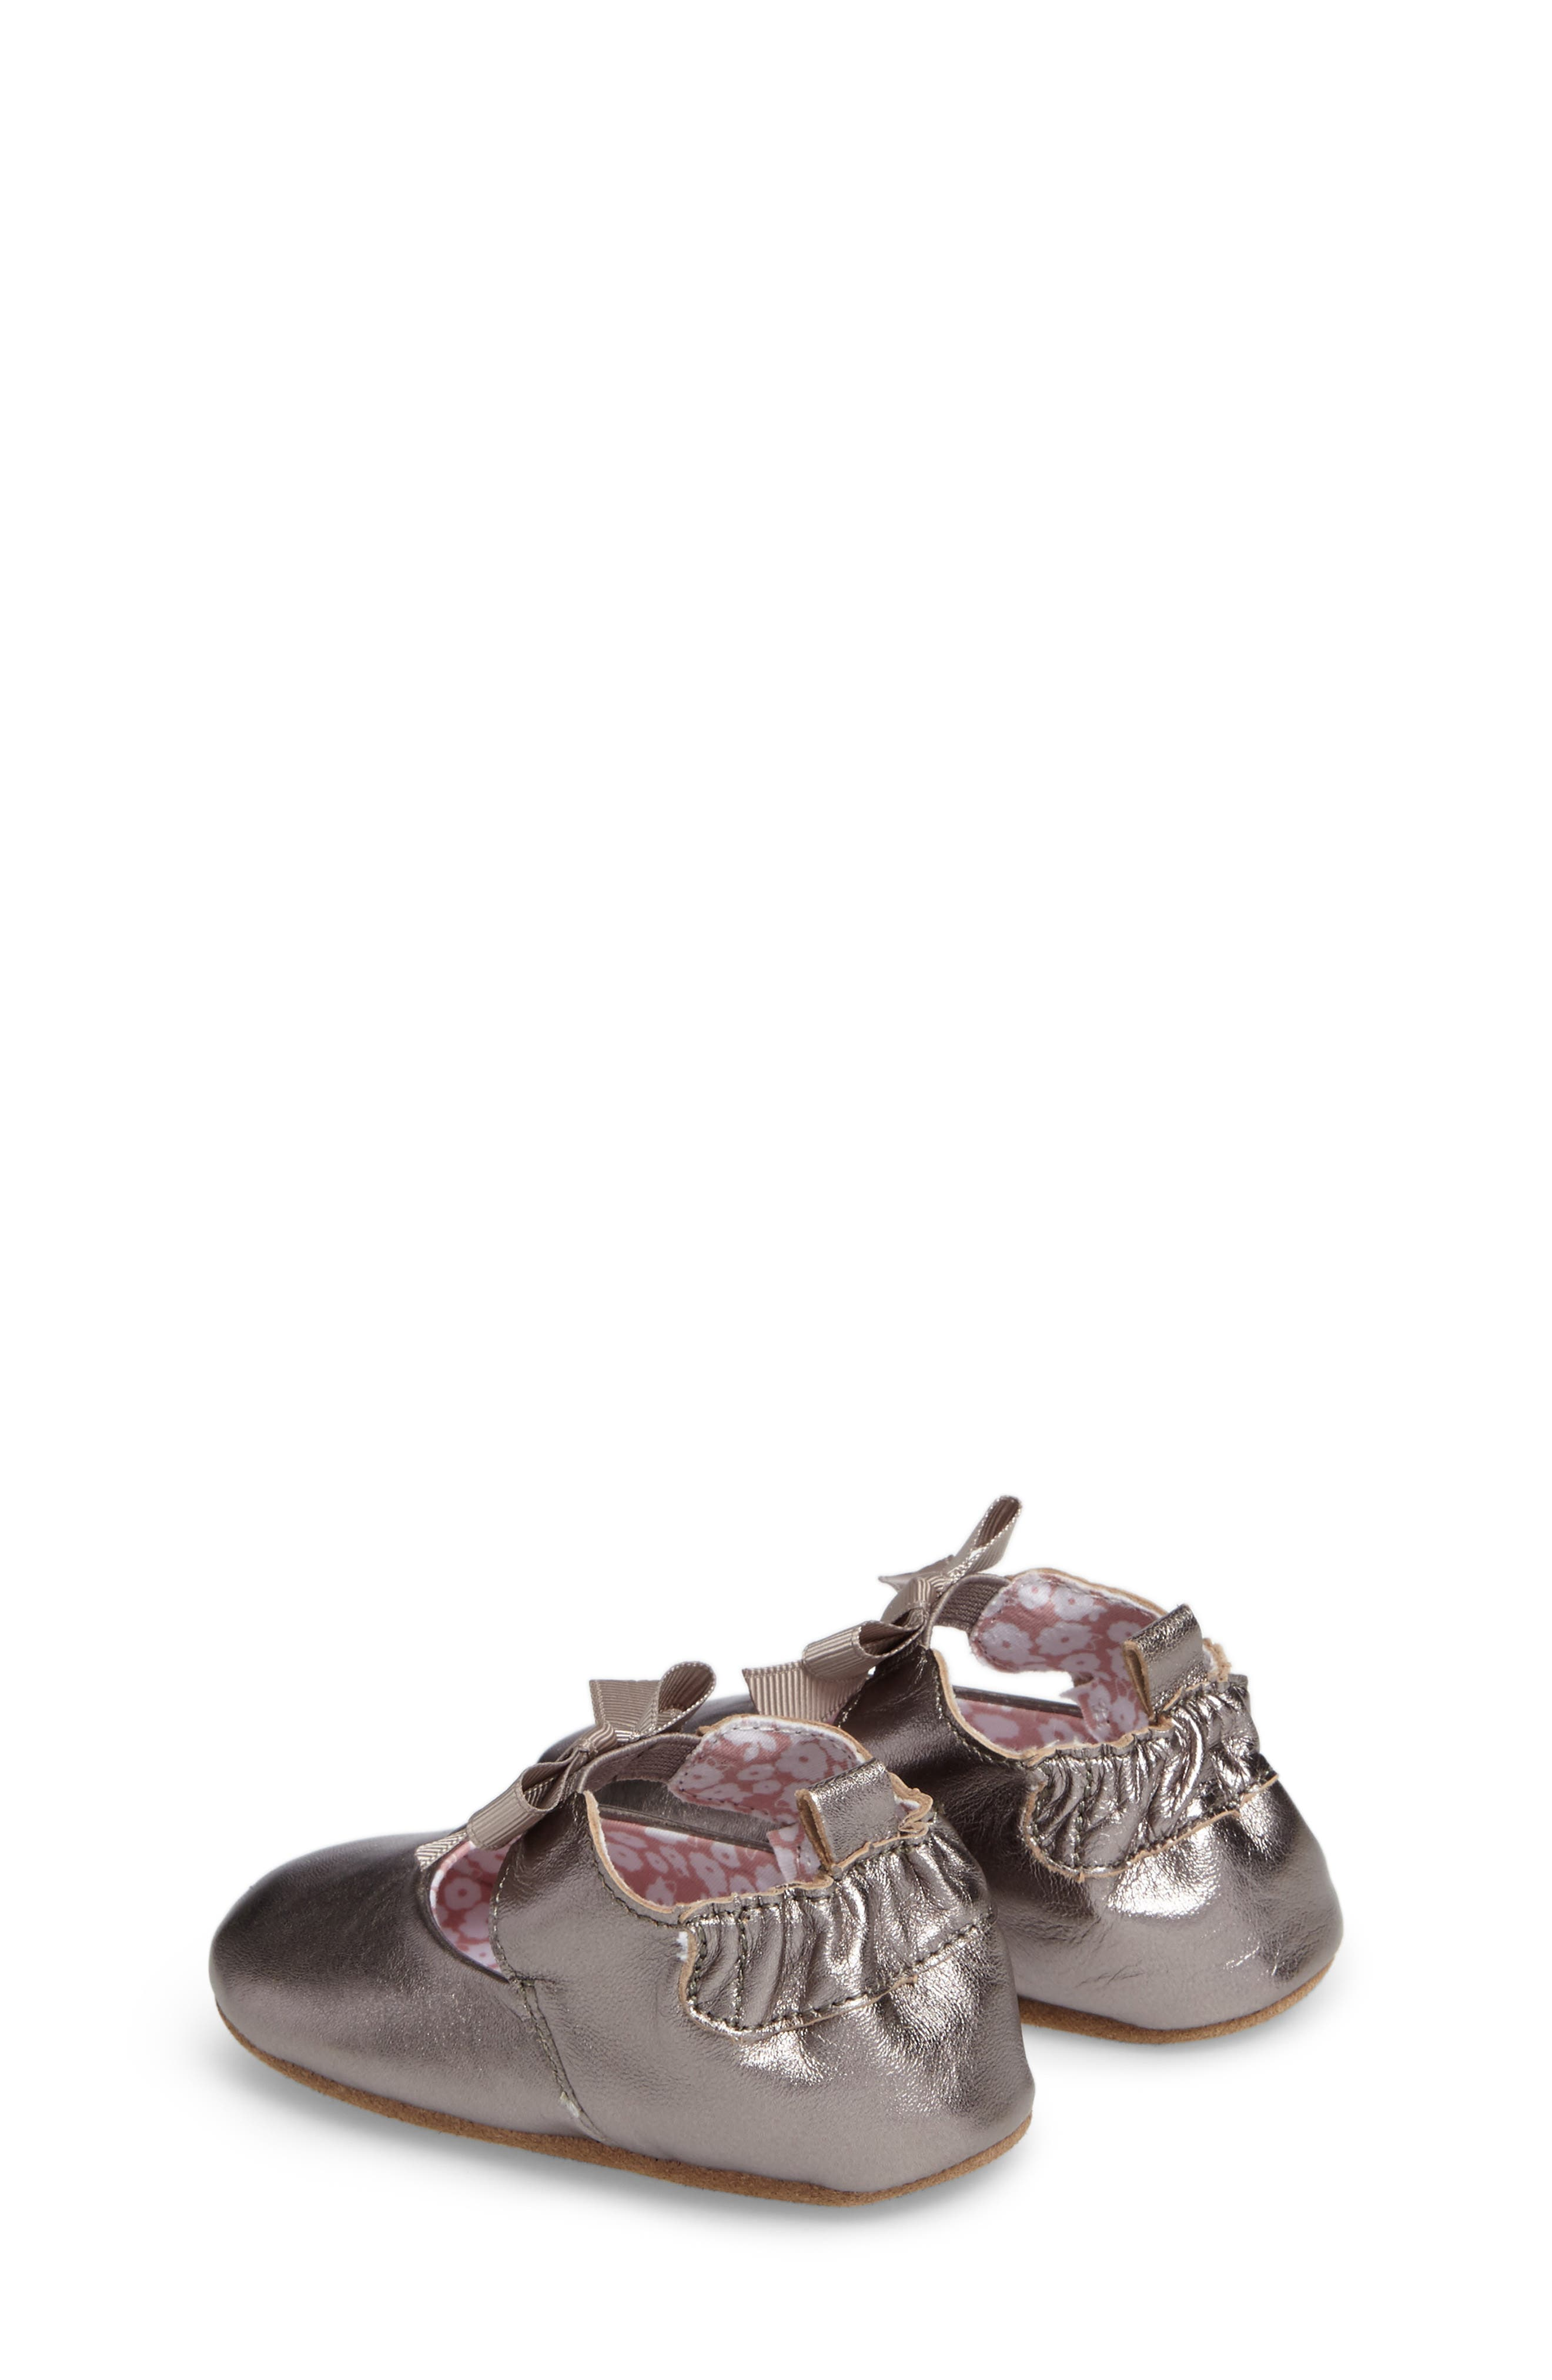 ROBEEZ<SUP>®</SUP>, Amelia Crib Shoes, Alternate thumbnail 2, color, GREY